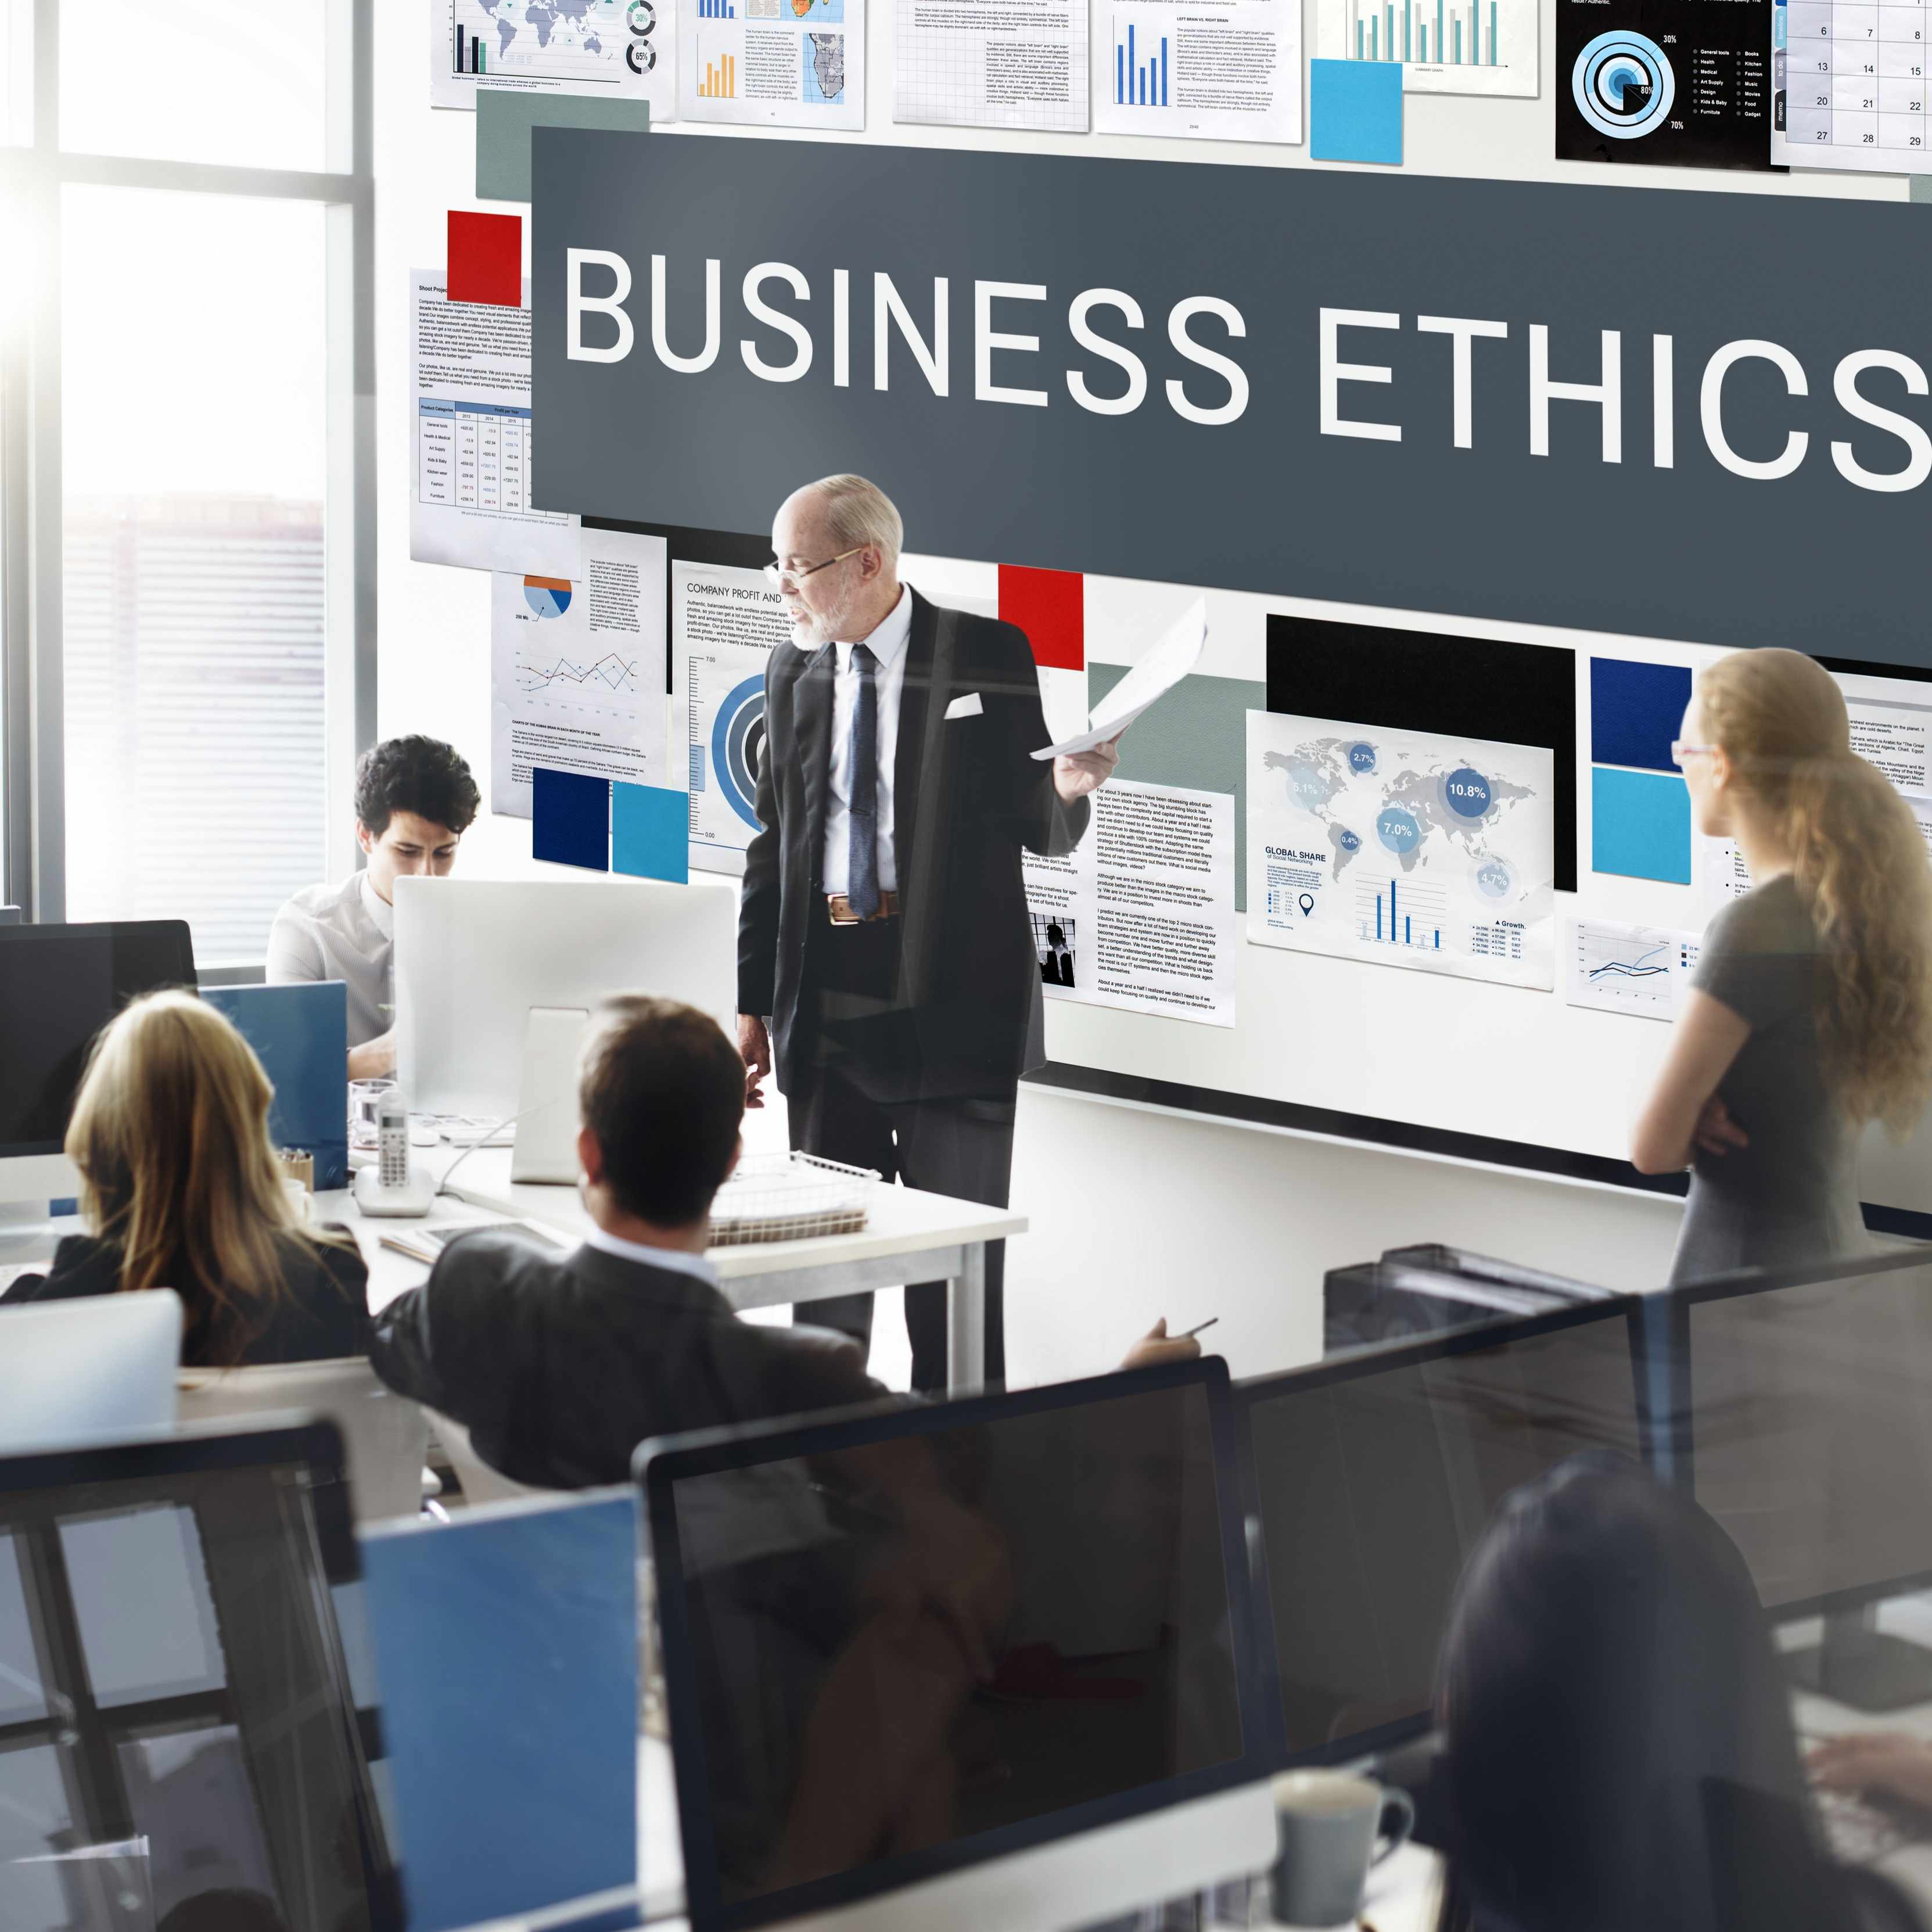 an office full of people attending a business ethics class